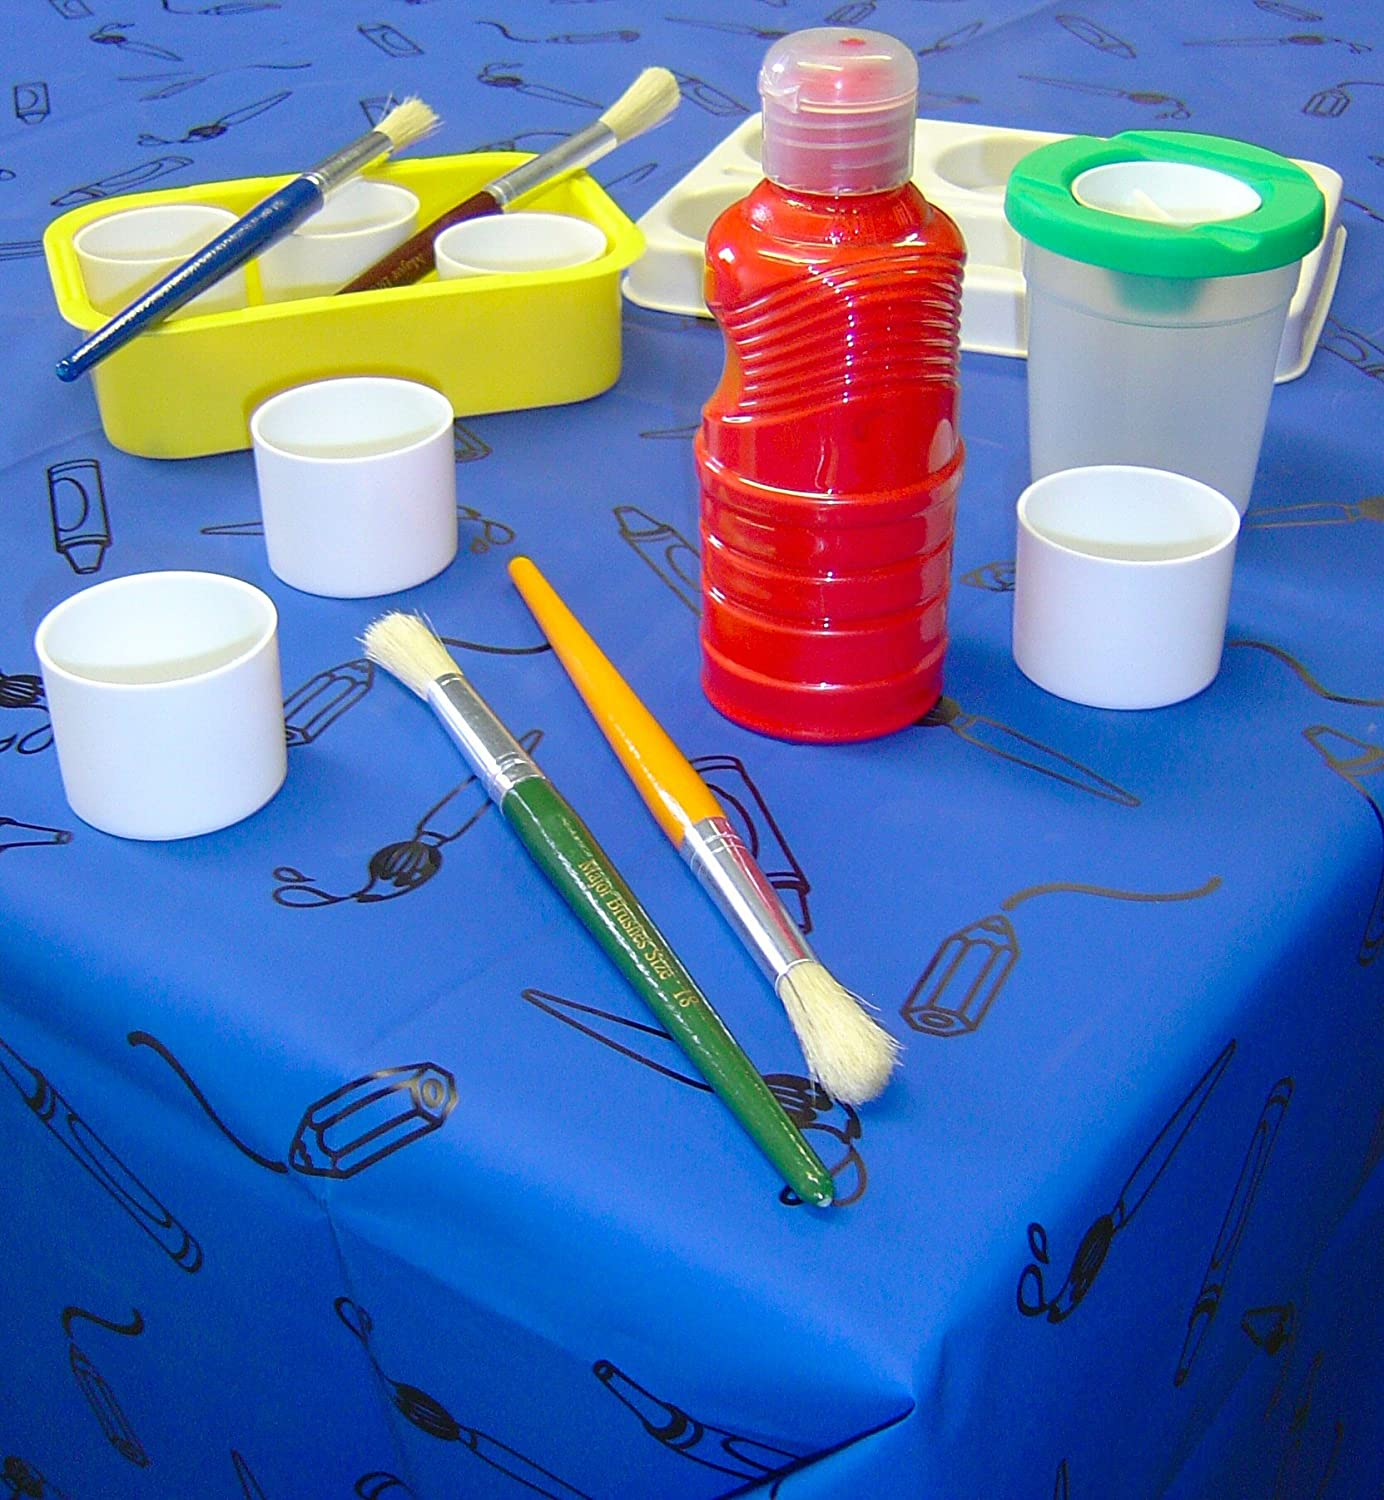 Blue Plastic Tablecover / Splashmat Major Brushes